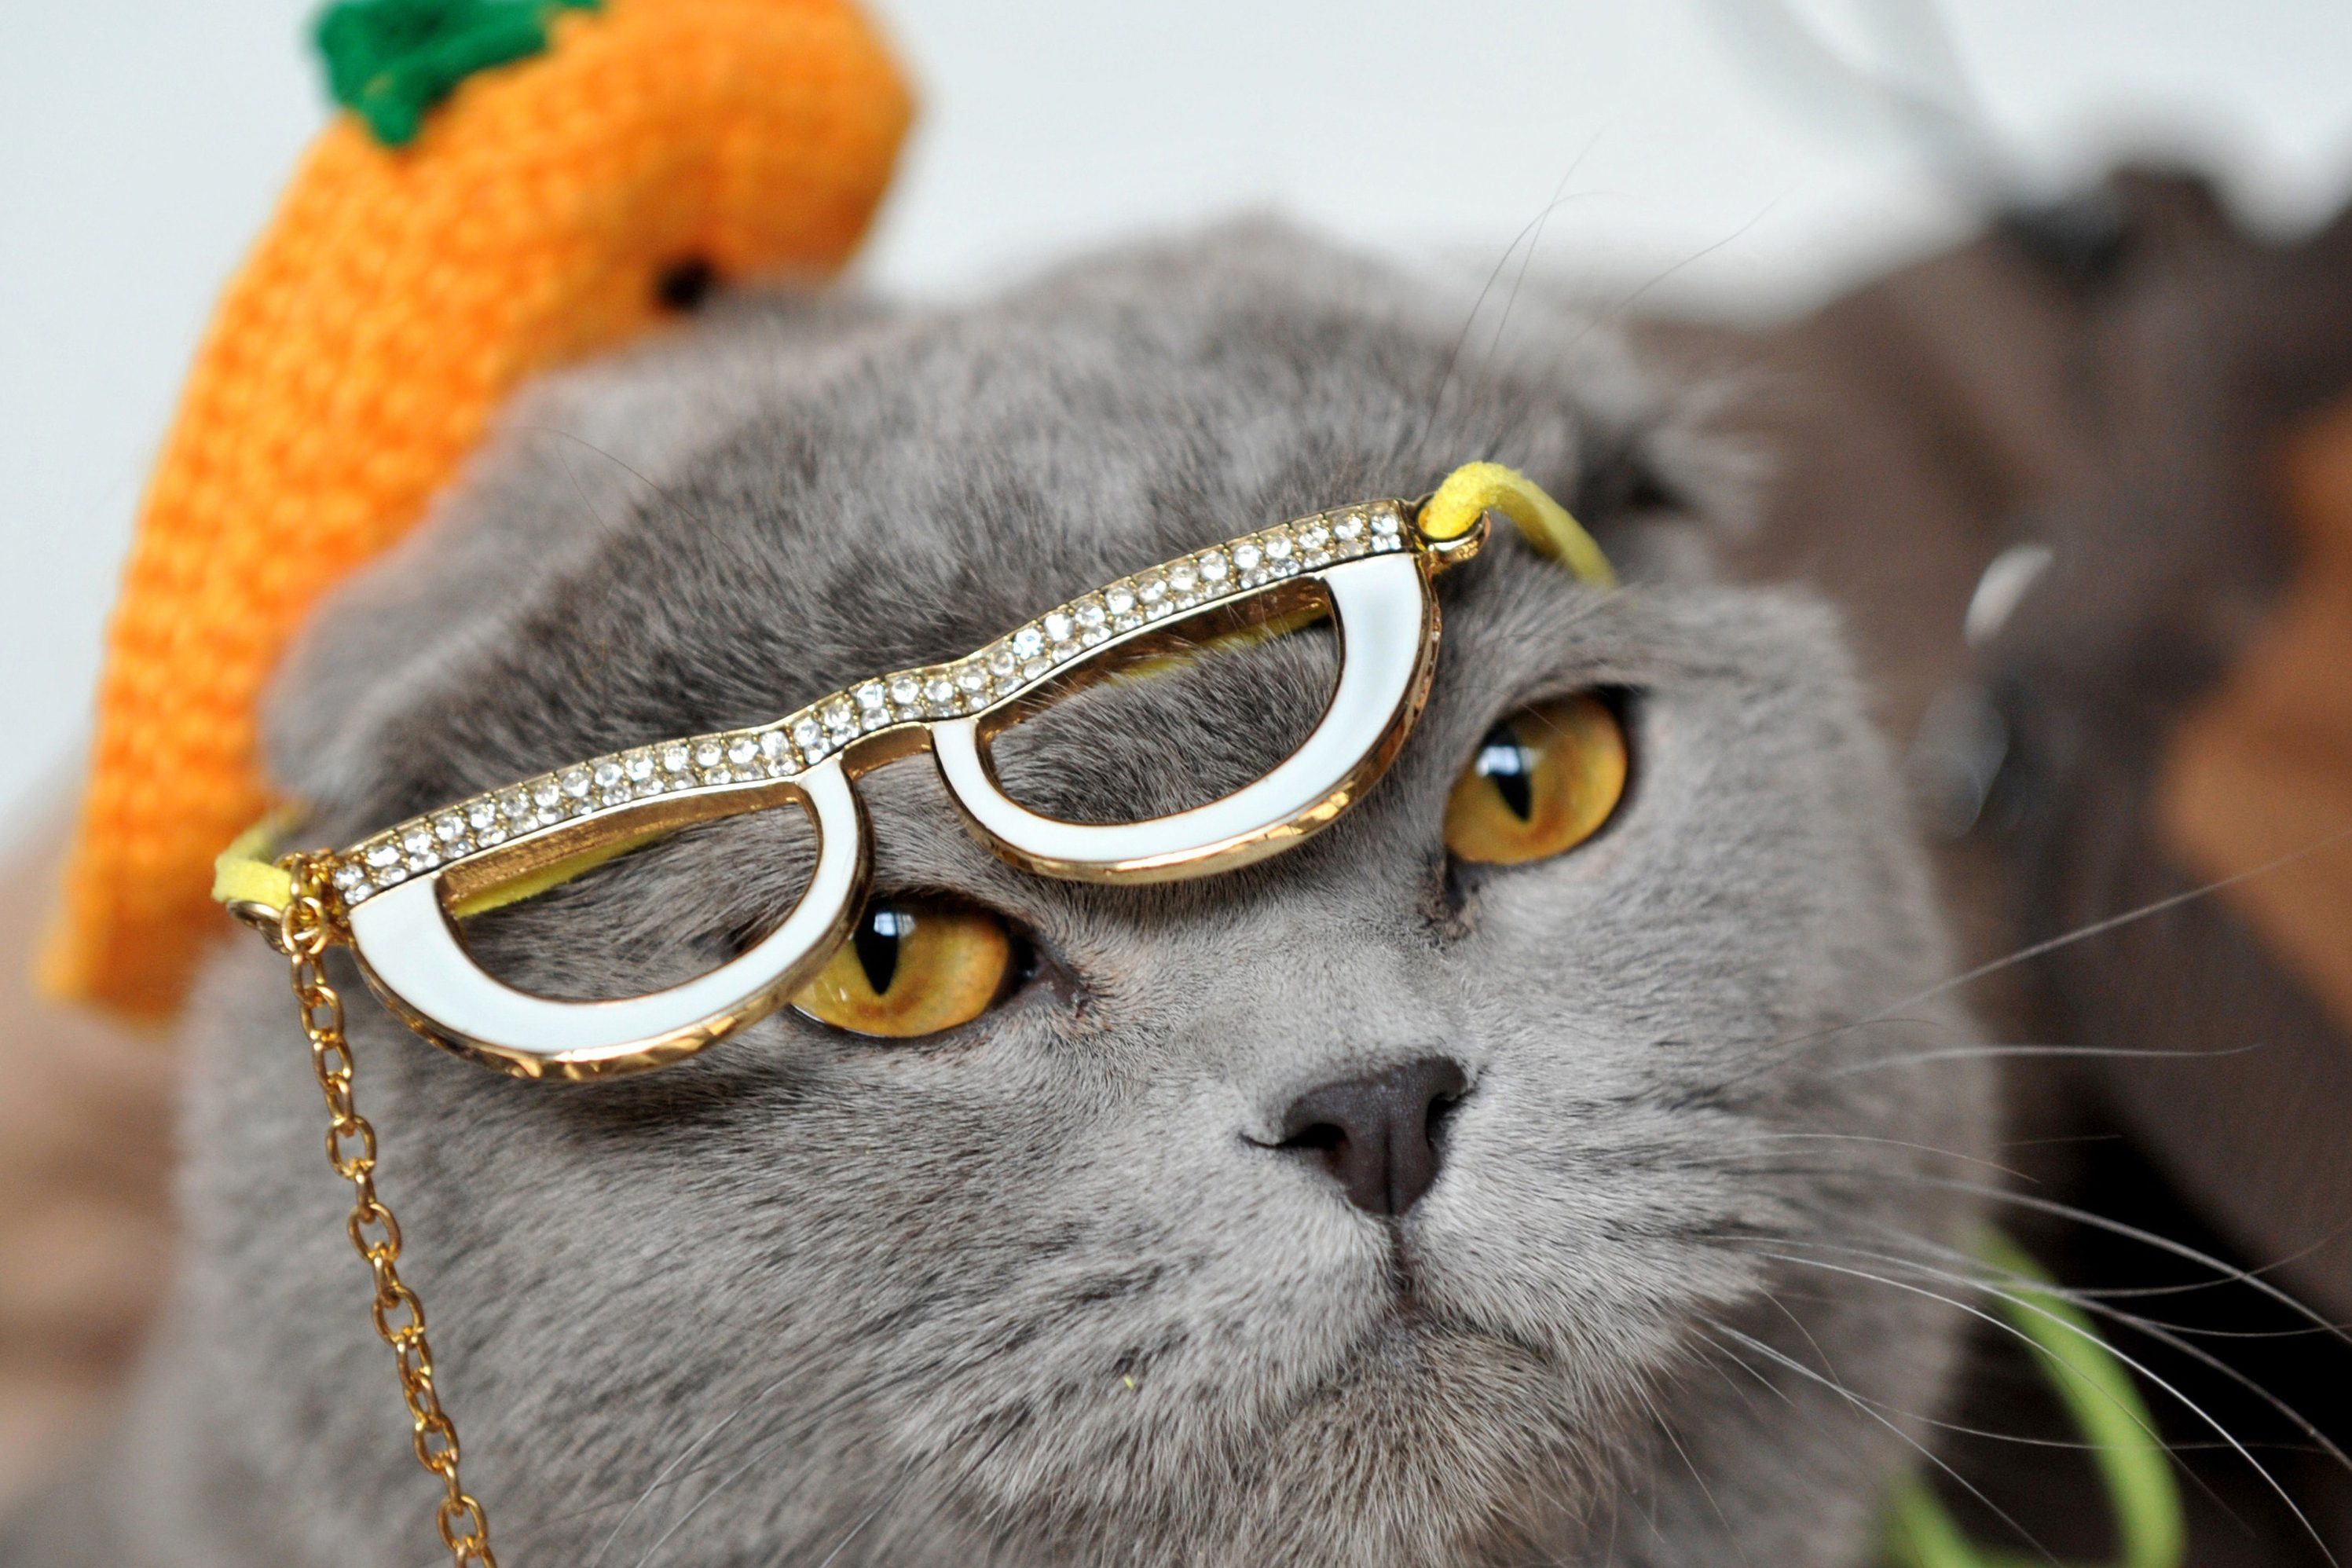 Wearing a hat and glasses a Scottish Fold cat looks on during a cat exhibition in Bishkek on March 23, 2013. Cat lovers from Kyrgyzstan, Kazakhstan and Uzbekistan took part in the exhibition. AFP PHOTO/VYACHESLAV OSELEDKOVYACHESLAV OSELEDKO/AFP/Getty Images